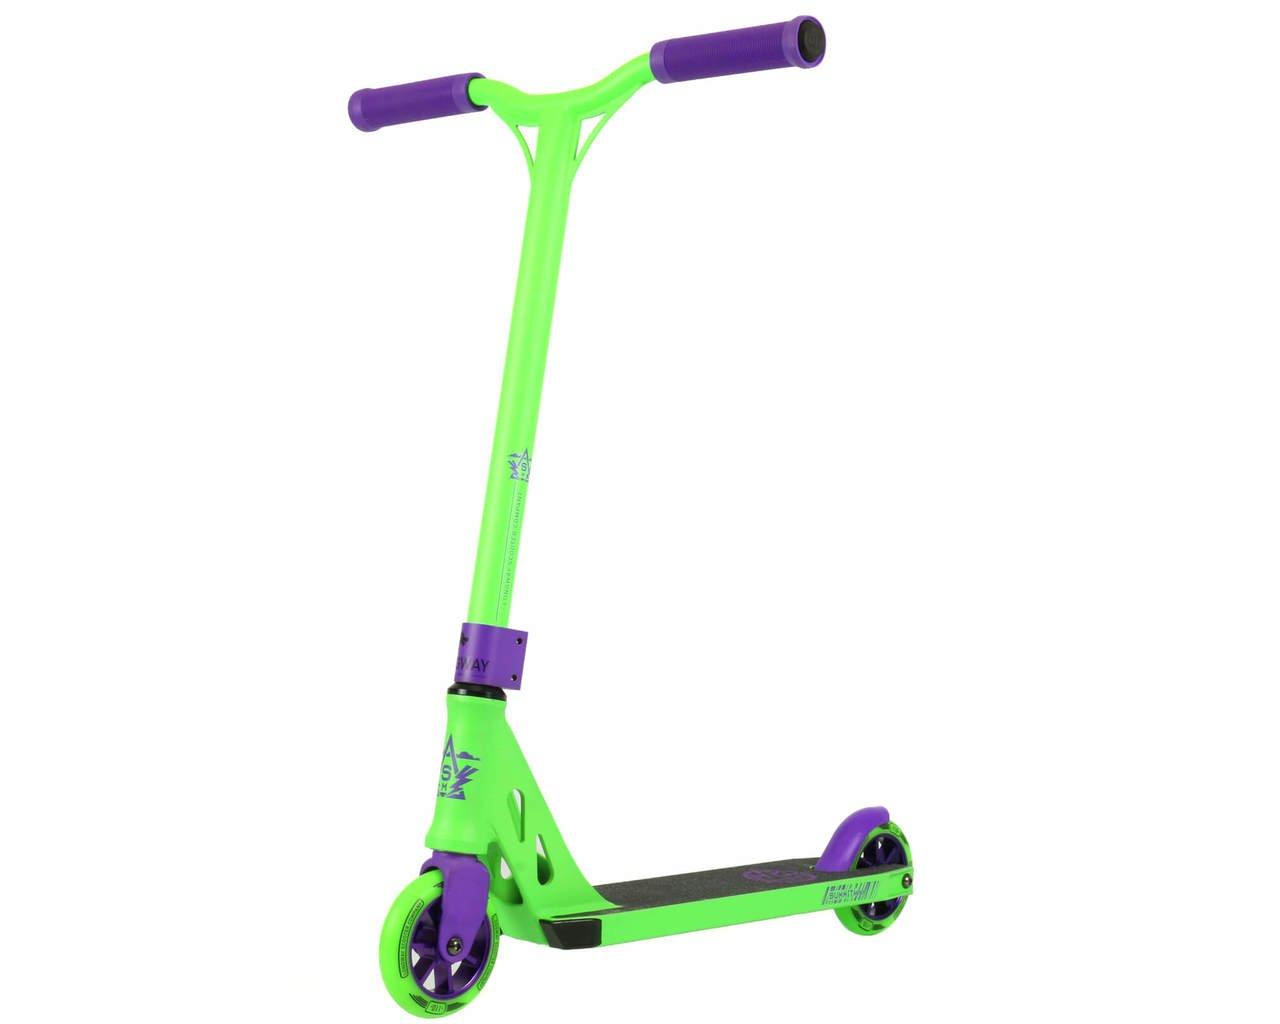 Summit Mini Trick Stunt Complete Scooter - Perfect for Young Beginner Freestyle Scooter Rider - Small Handlebars and Small Deck Plate - The WORLD'S Favorite Professional Mini Kick Push Scooter (Green)